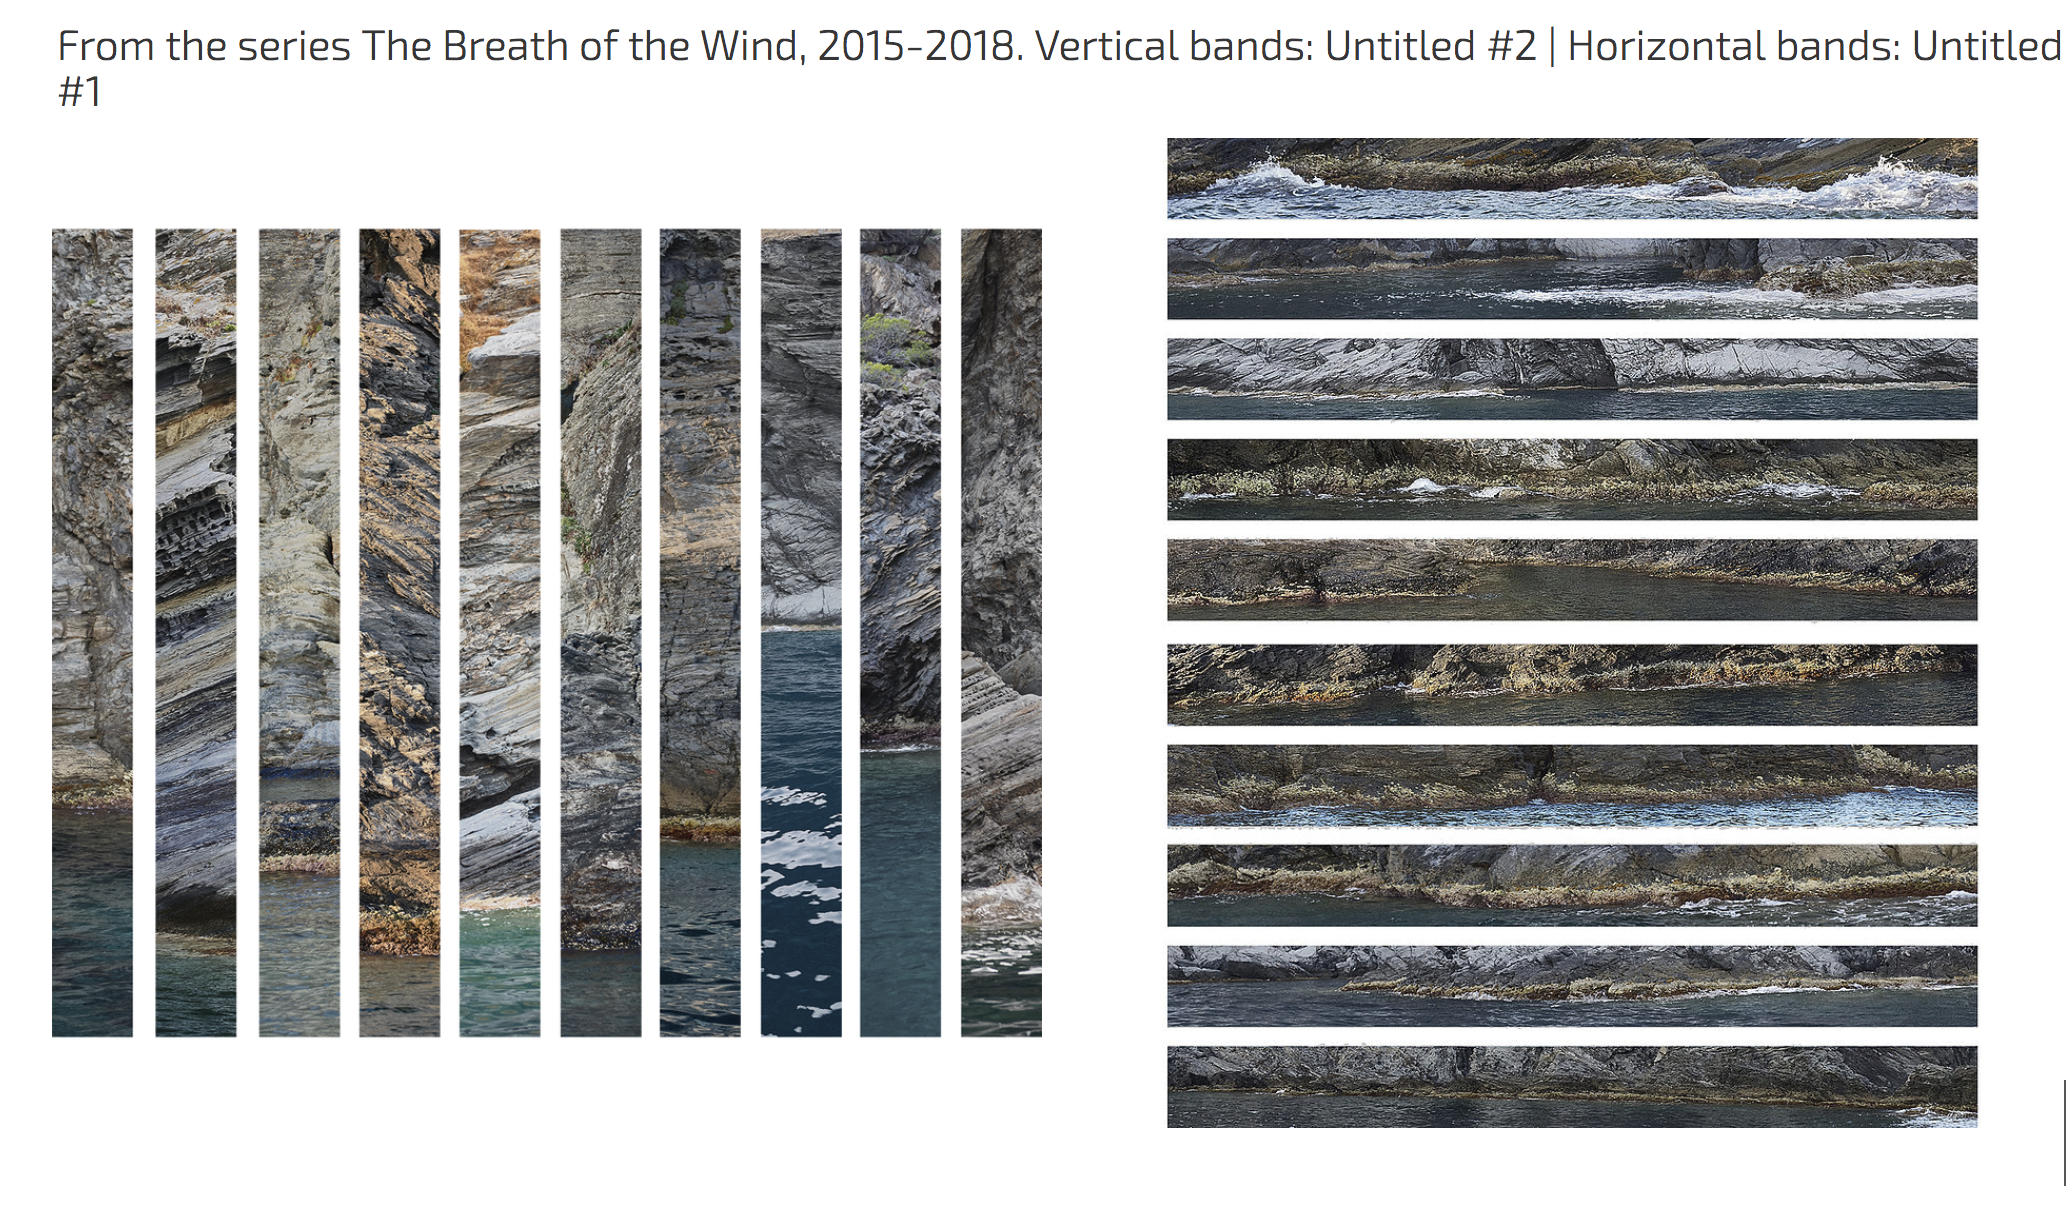 From the series The Breath of the Wind, 2015-2018. Vertical Bands: Untitled #2 | Horizontal Bands: Untiteld #1